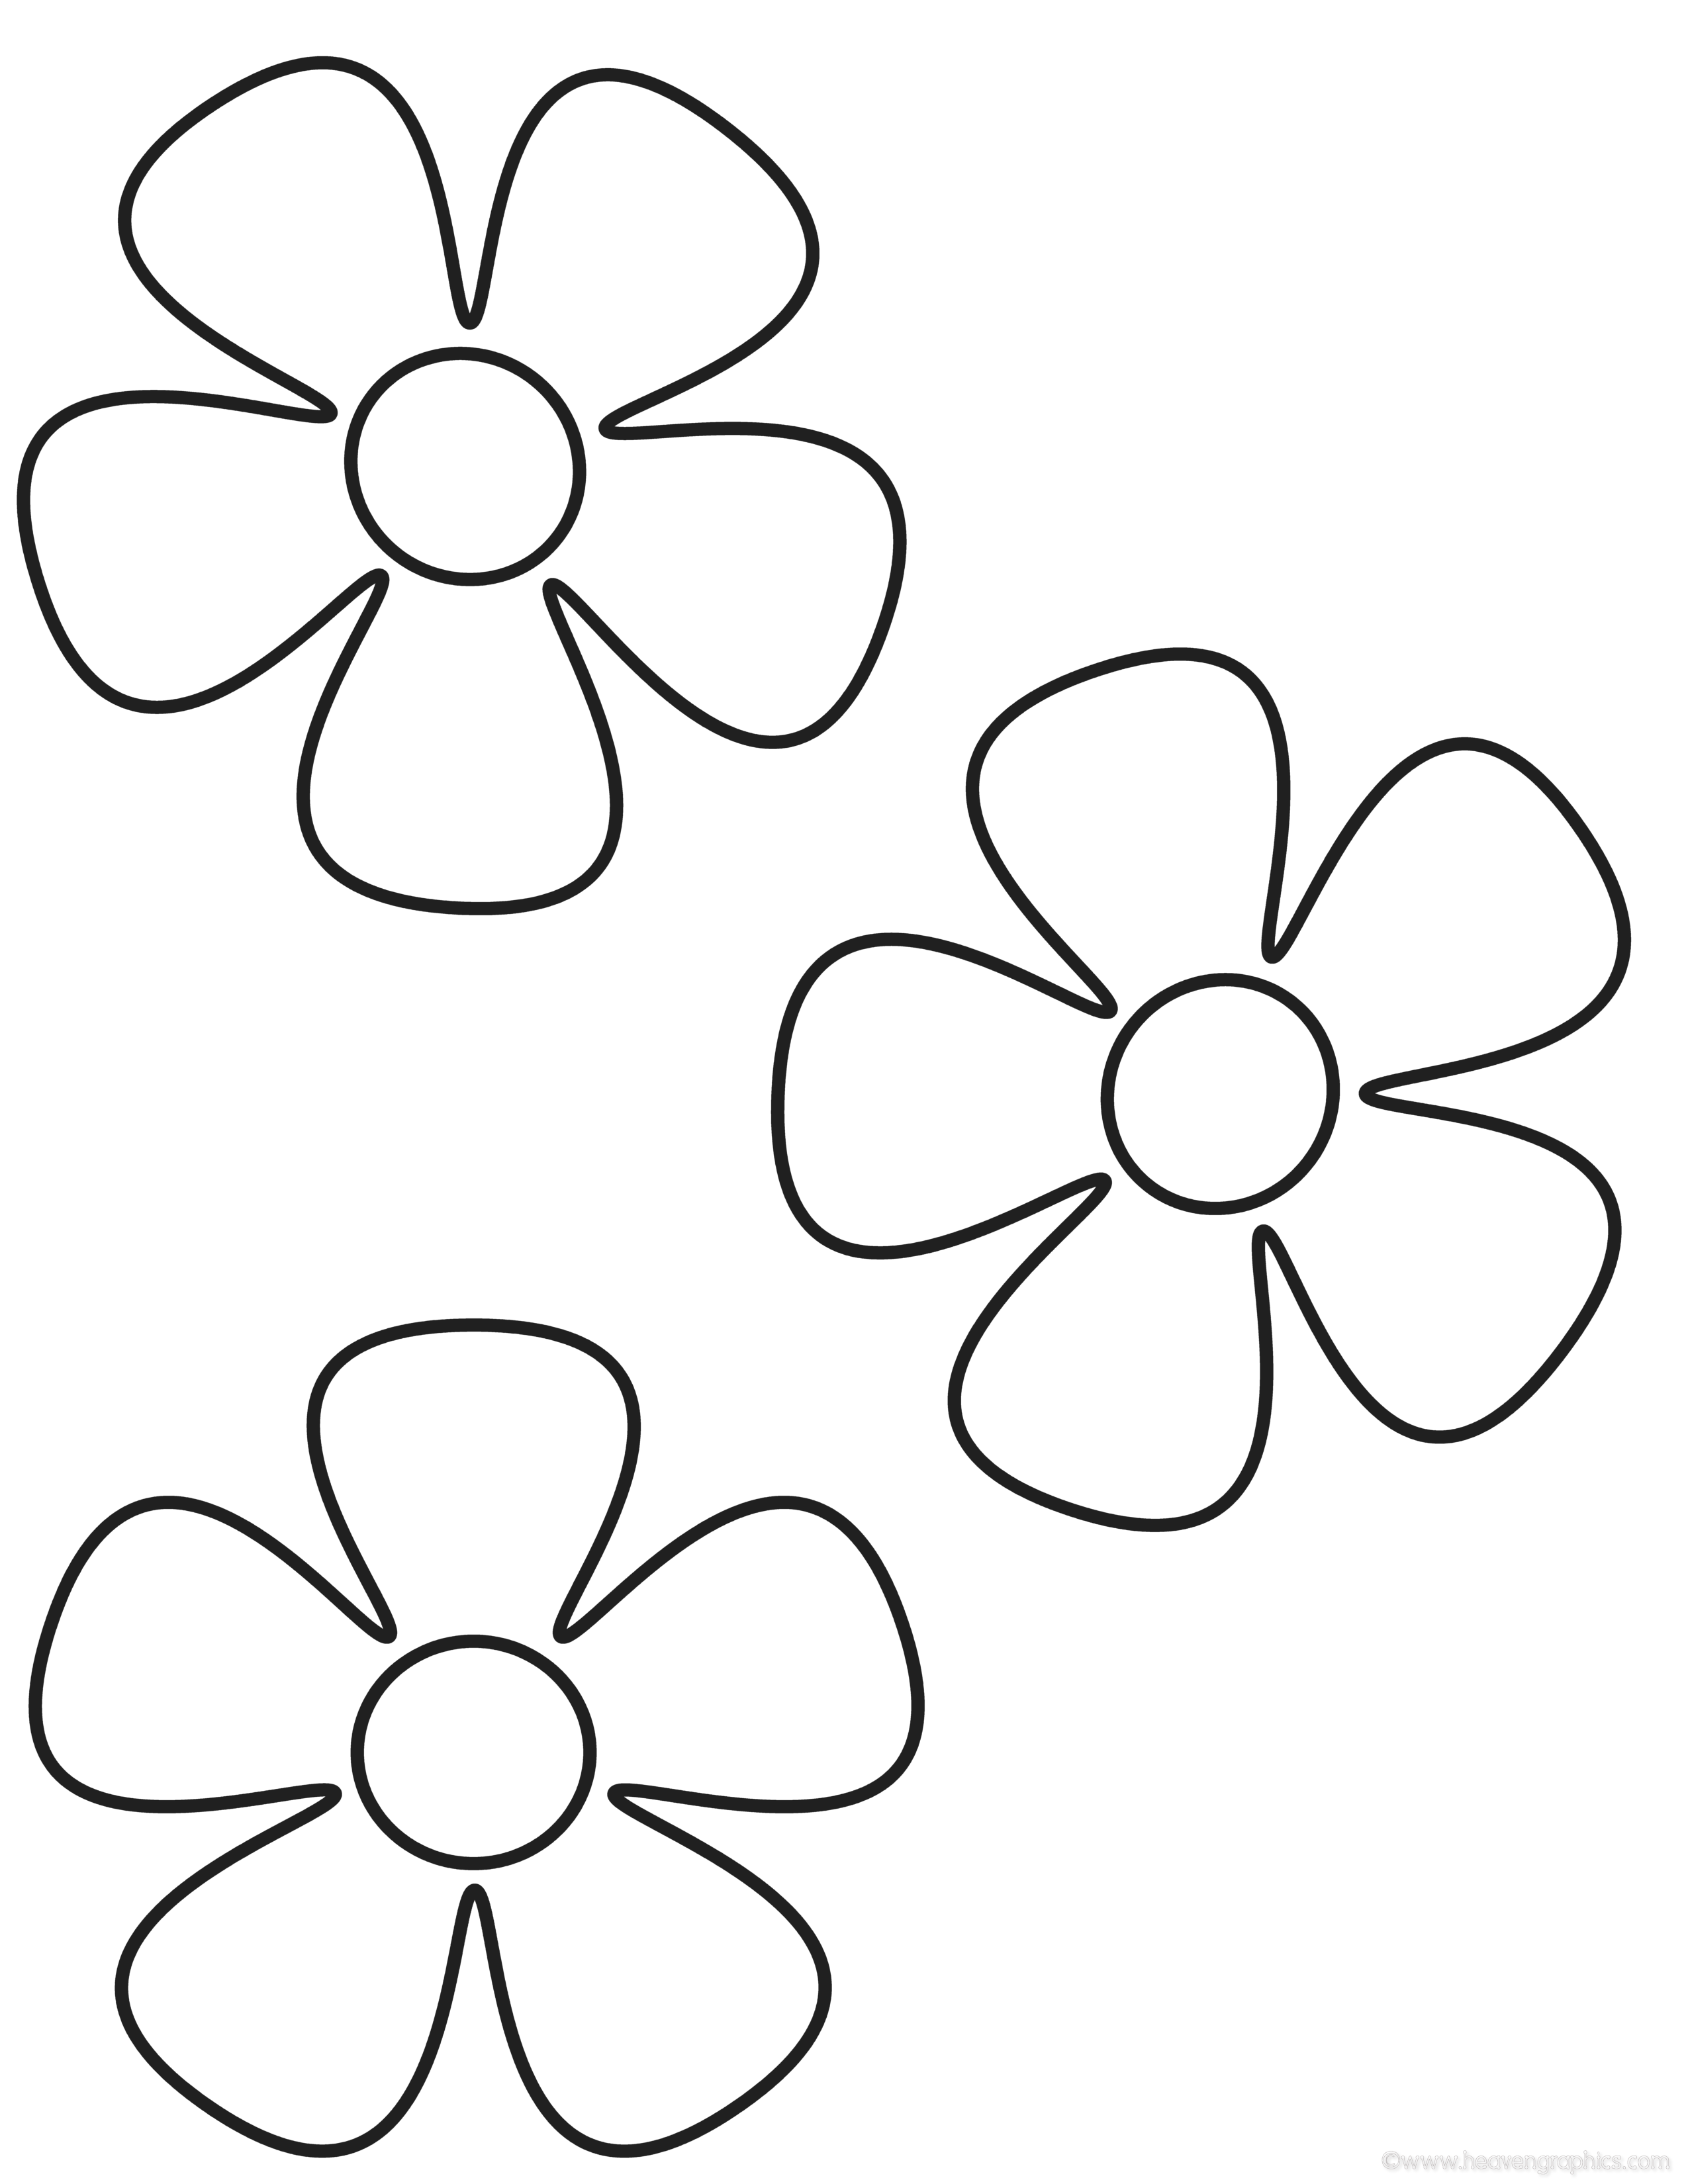 picture of flower for colouring spring flowers coloring page crayolacom for picture of colouring flower